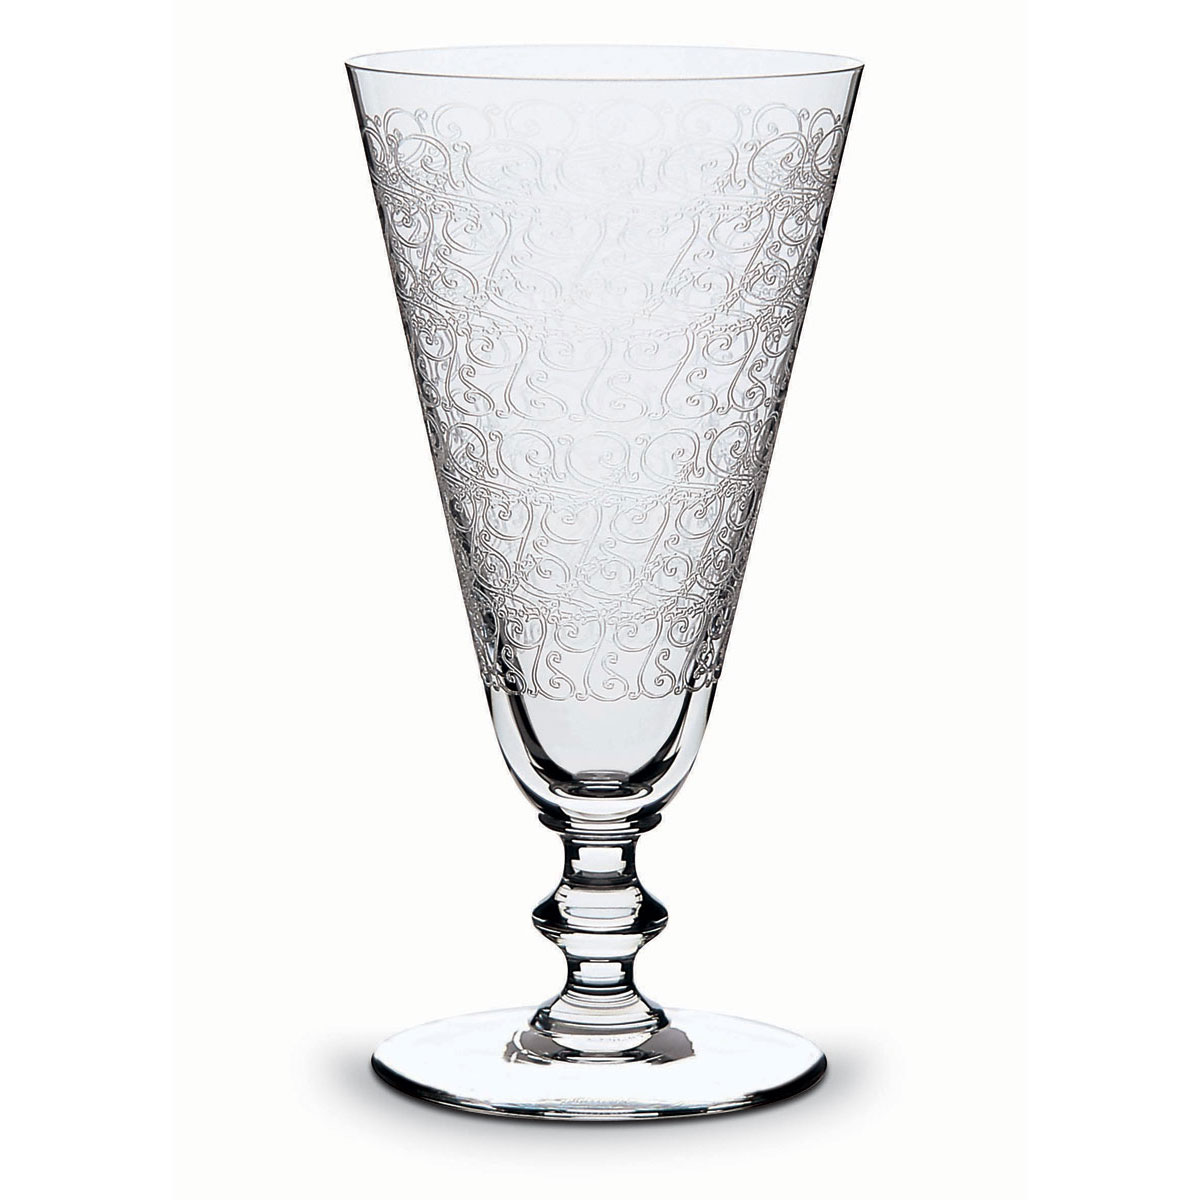 Baccarat Crystal, Rohan Champagne Crystal Flute, Single